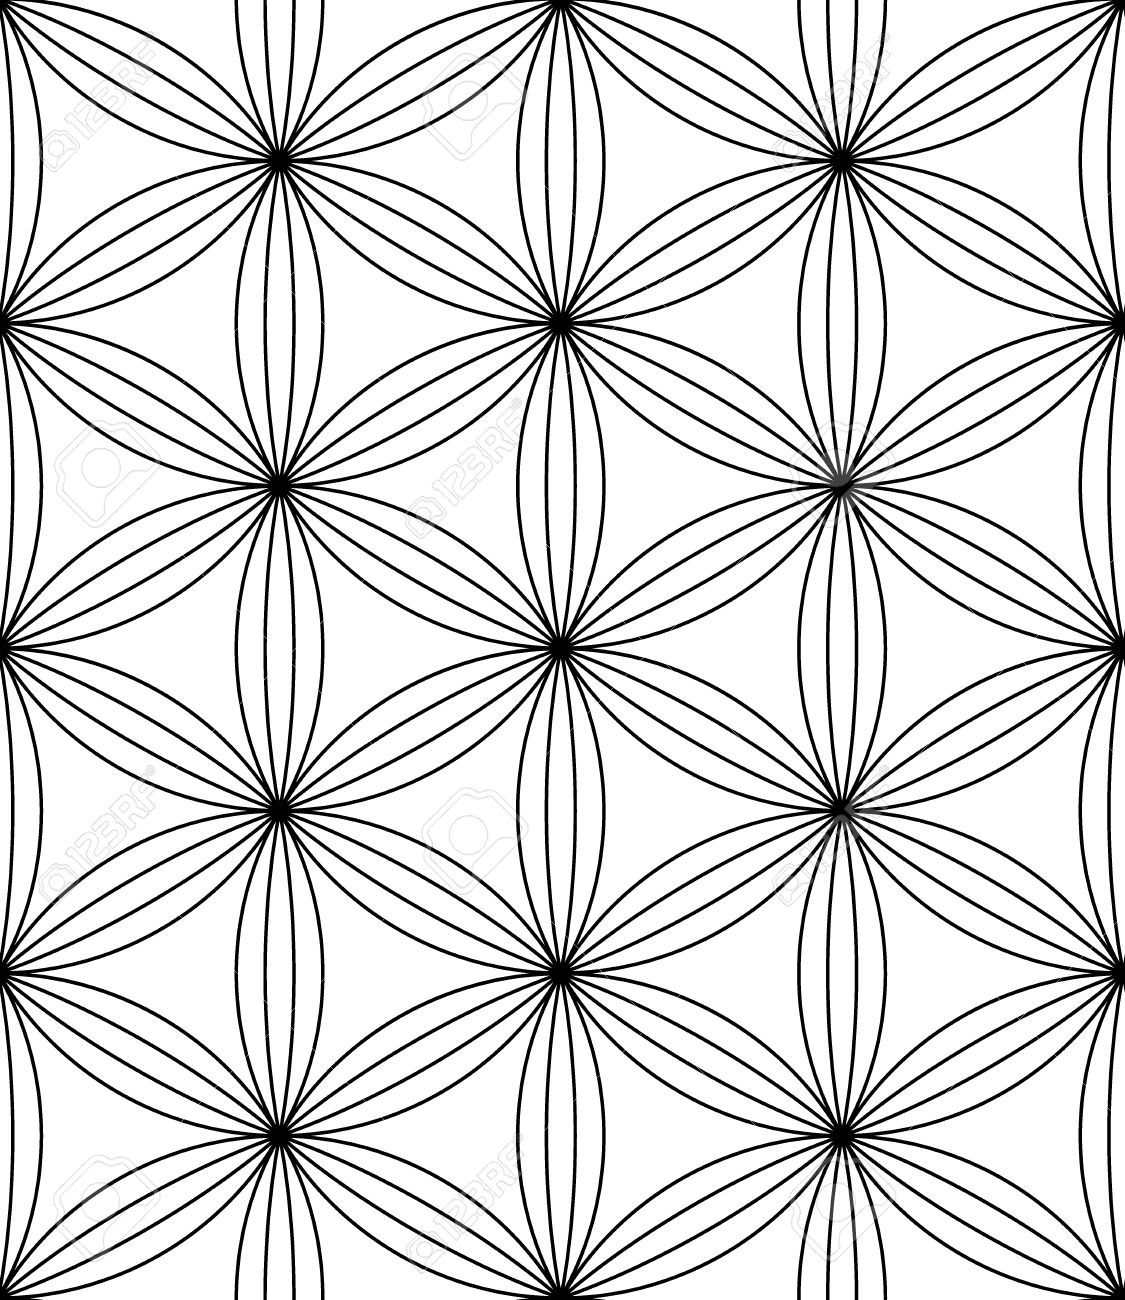 Black bed sheet texture seamless - Vector Vector Modern Seamless Pattern Flower Of Life Black And White Textile Print Stylish Background Abstract Texture Monochrome Fashion Design